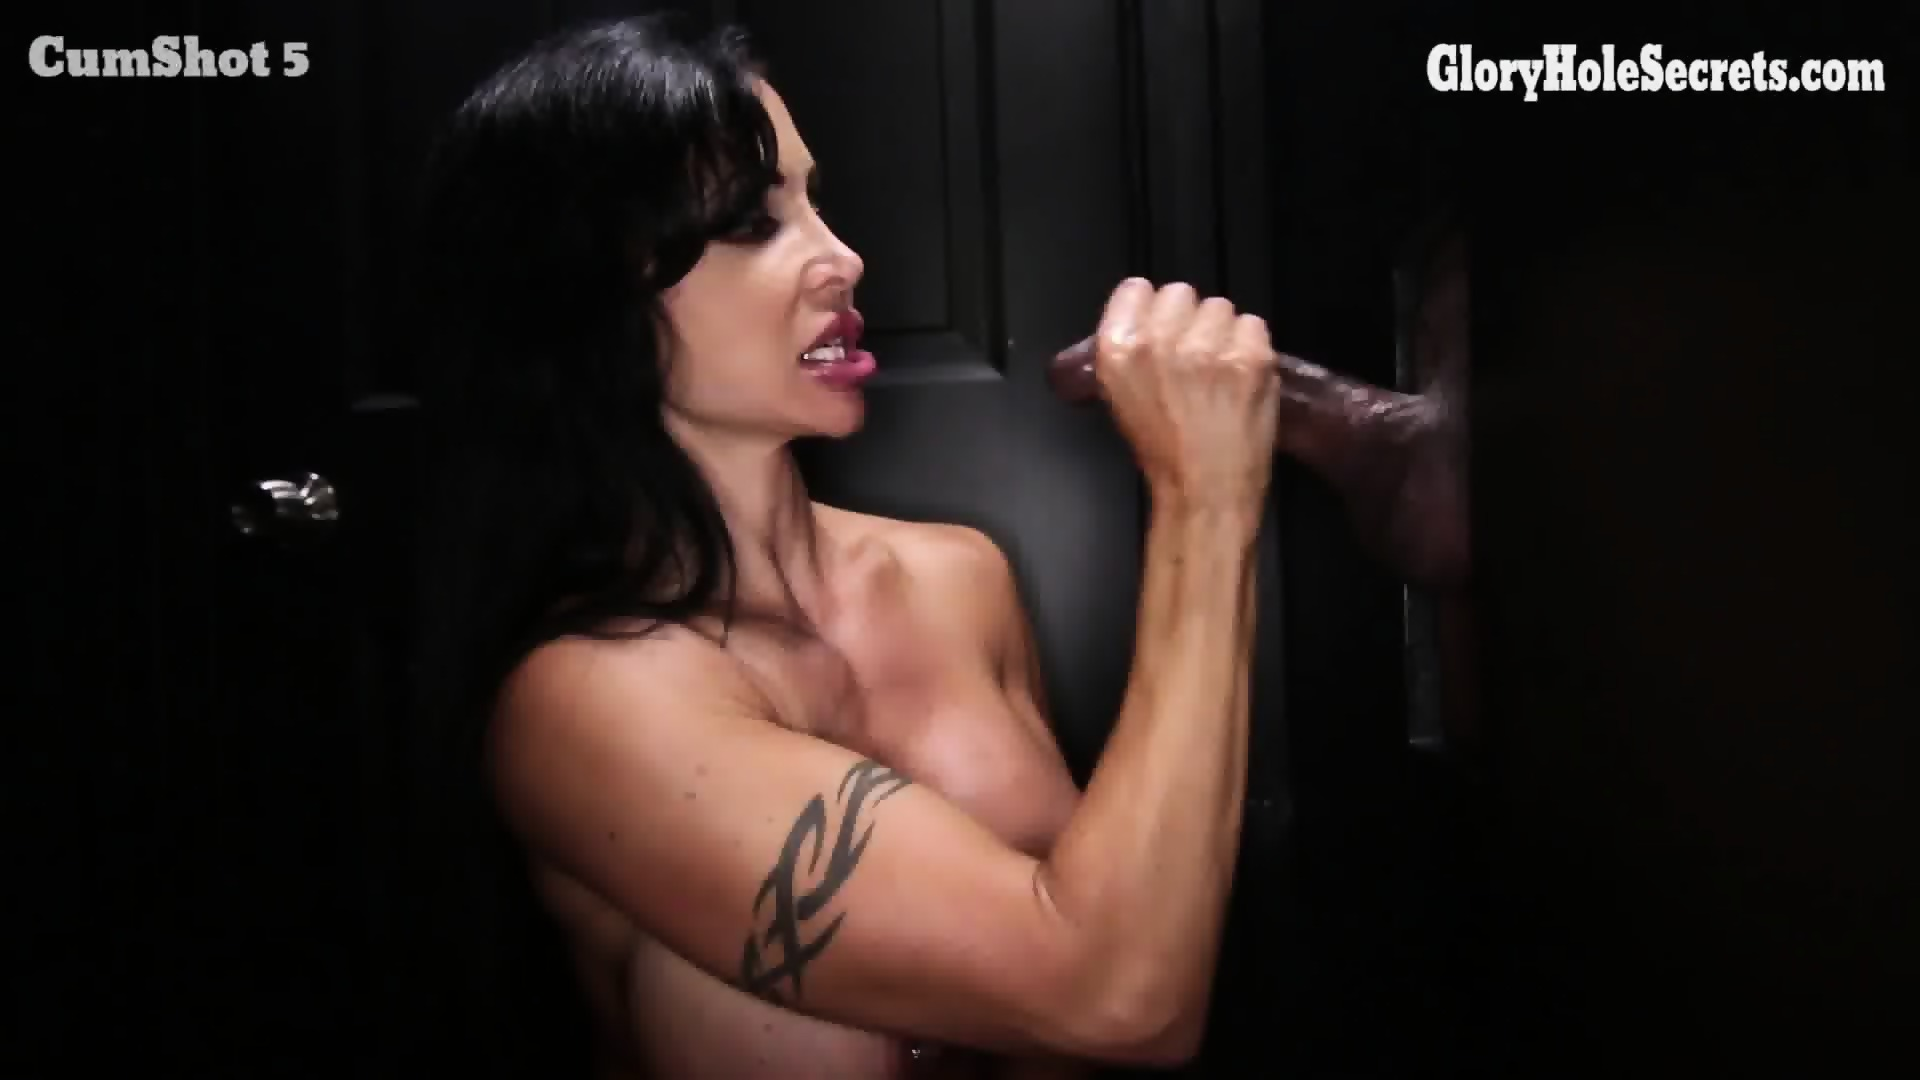 Cum filled glory hole video